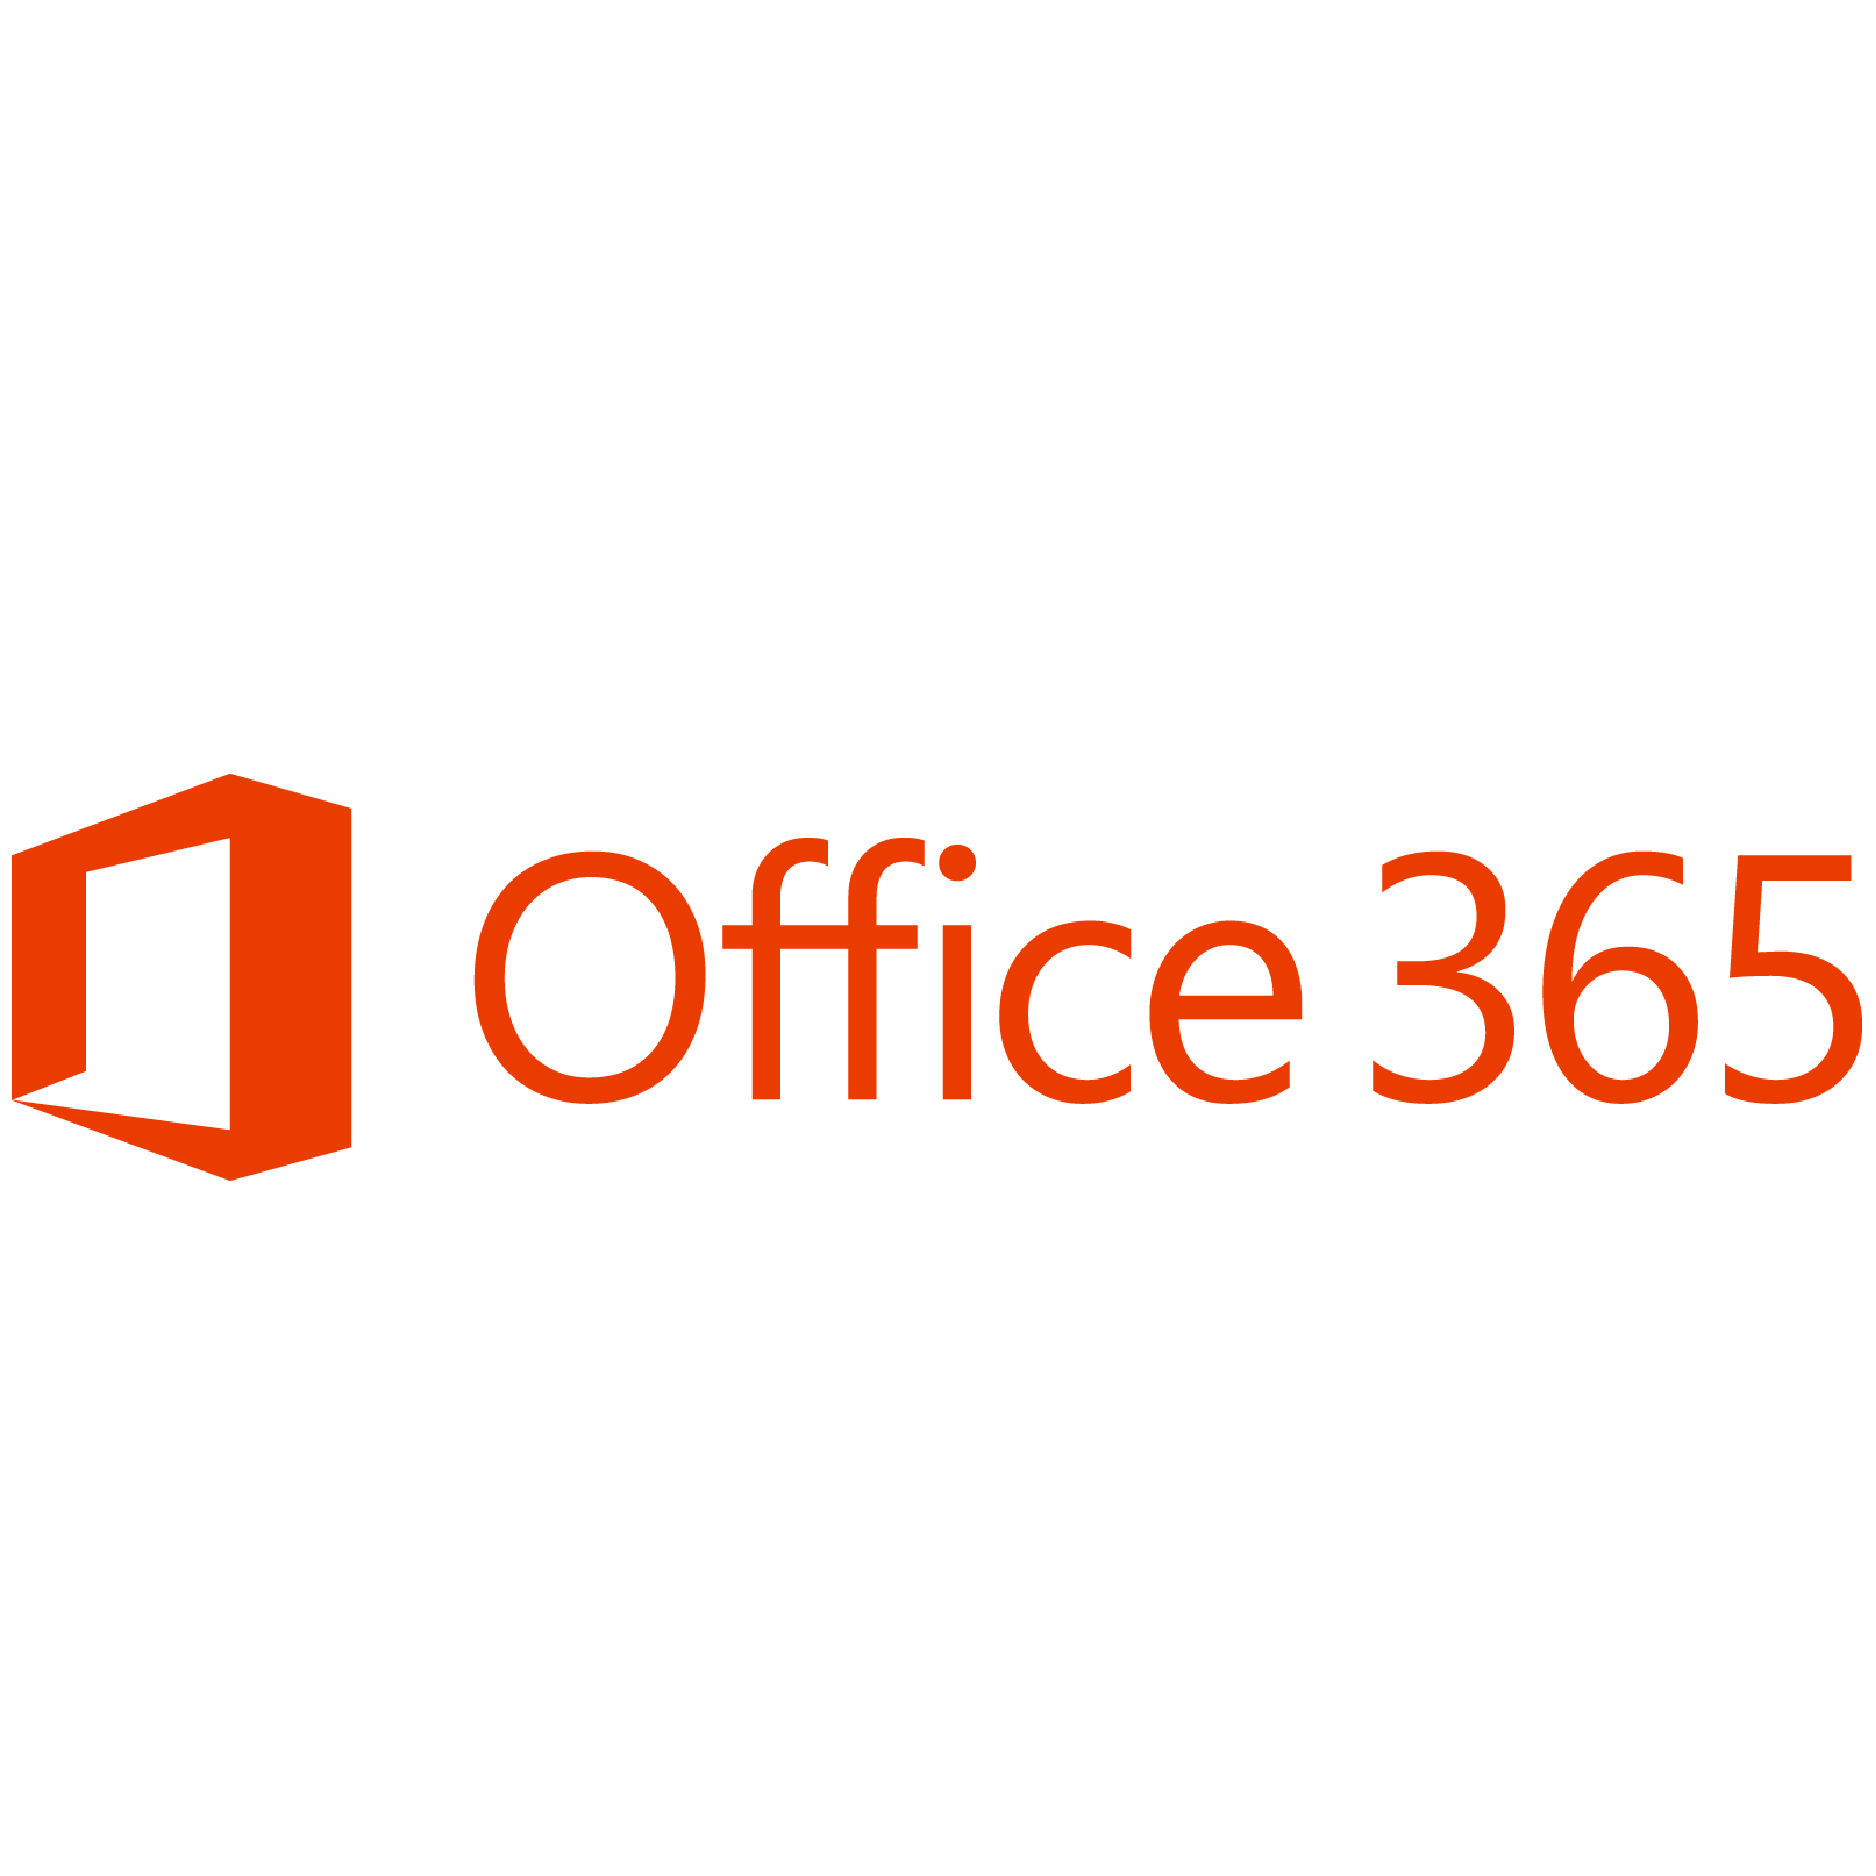 Office 365 Cloud Services